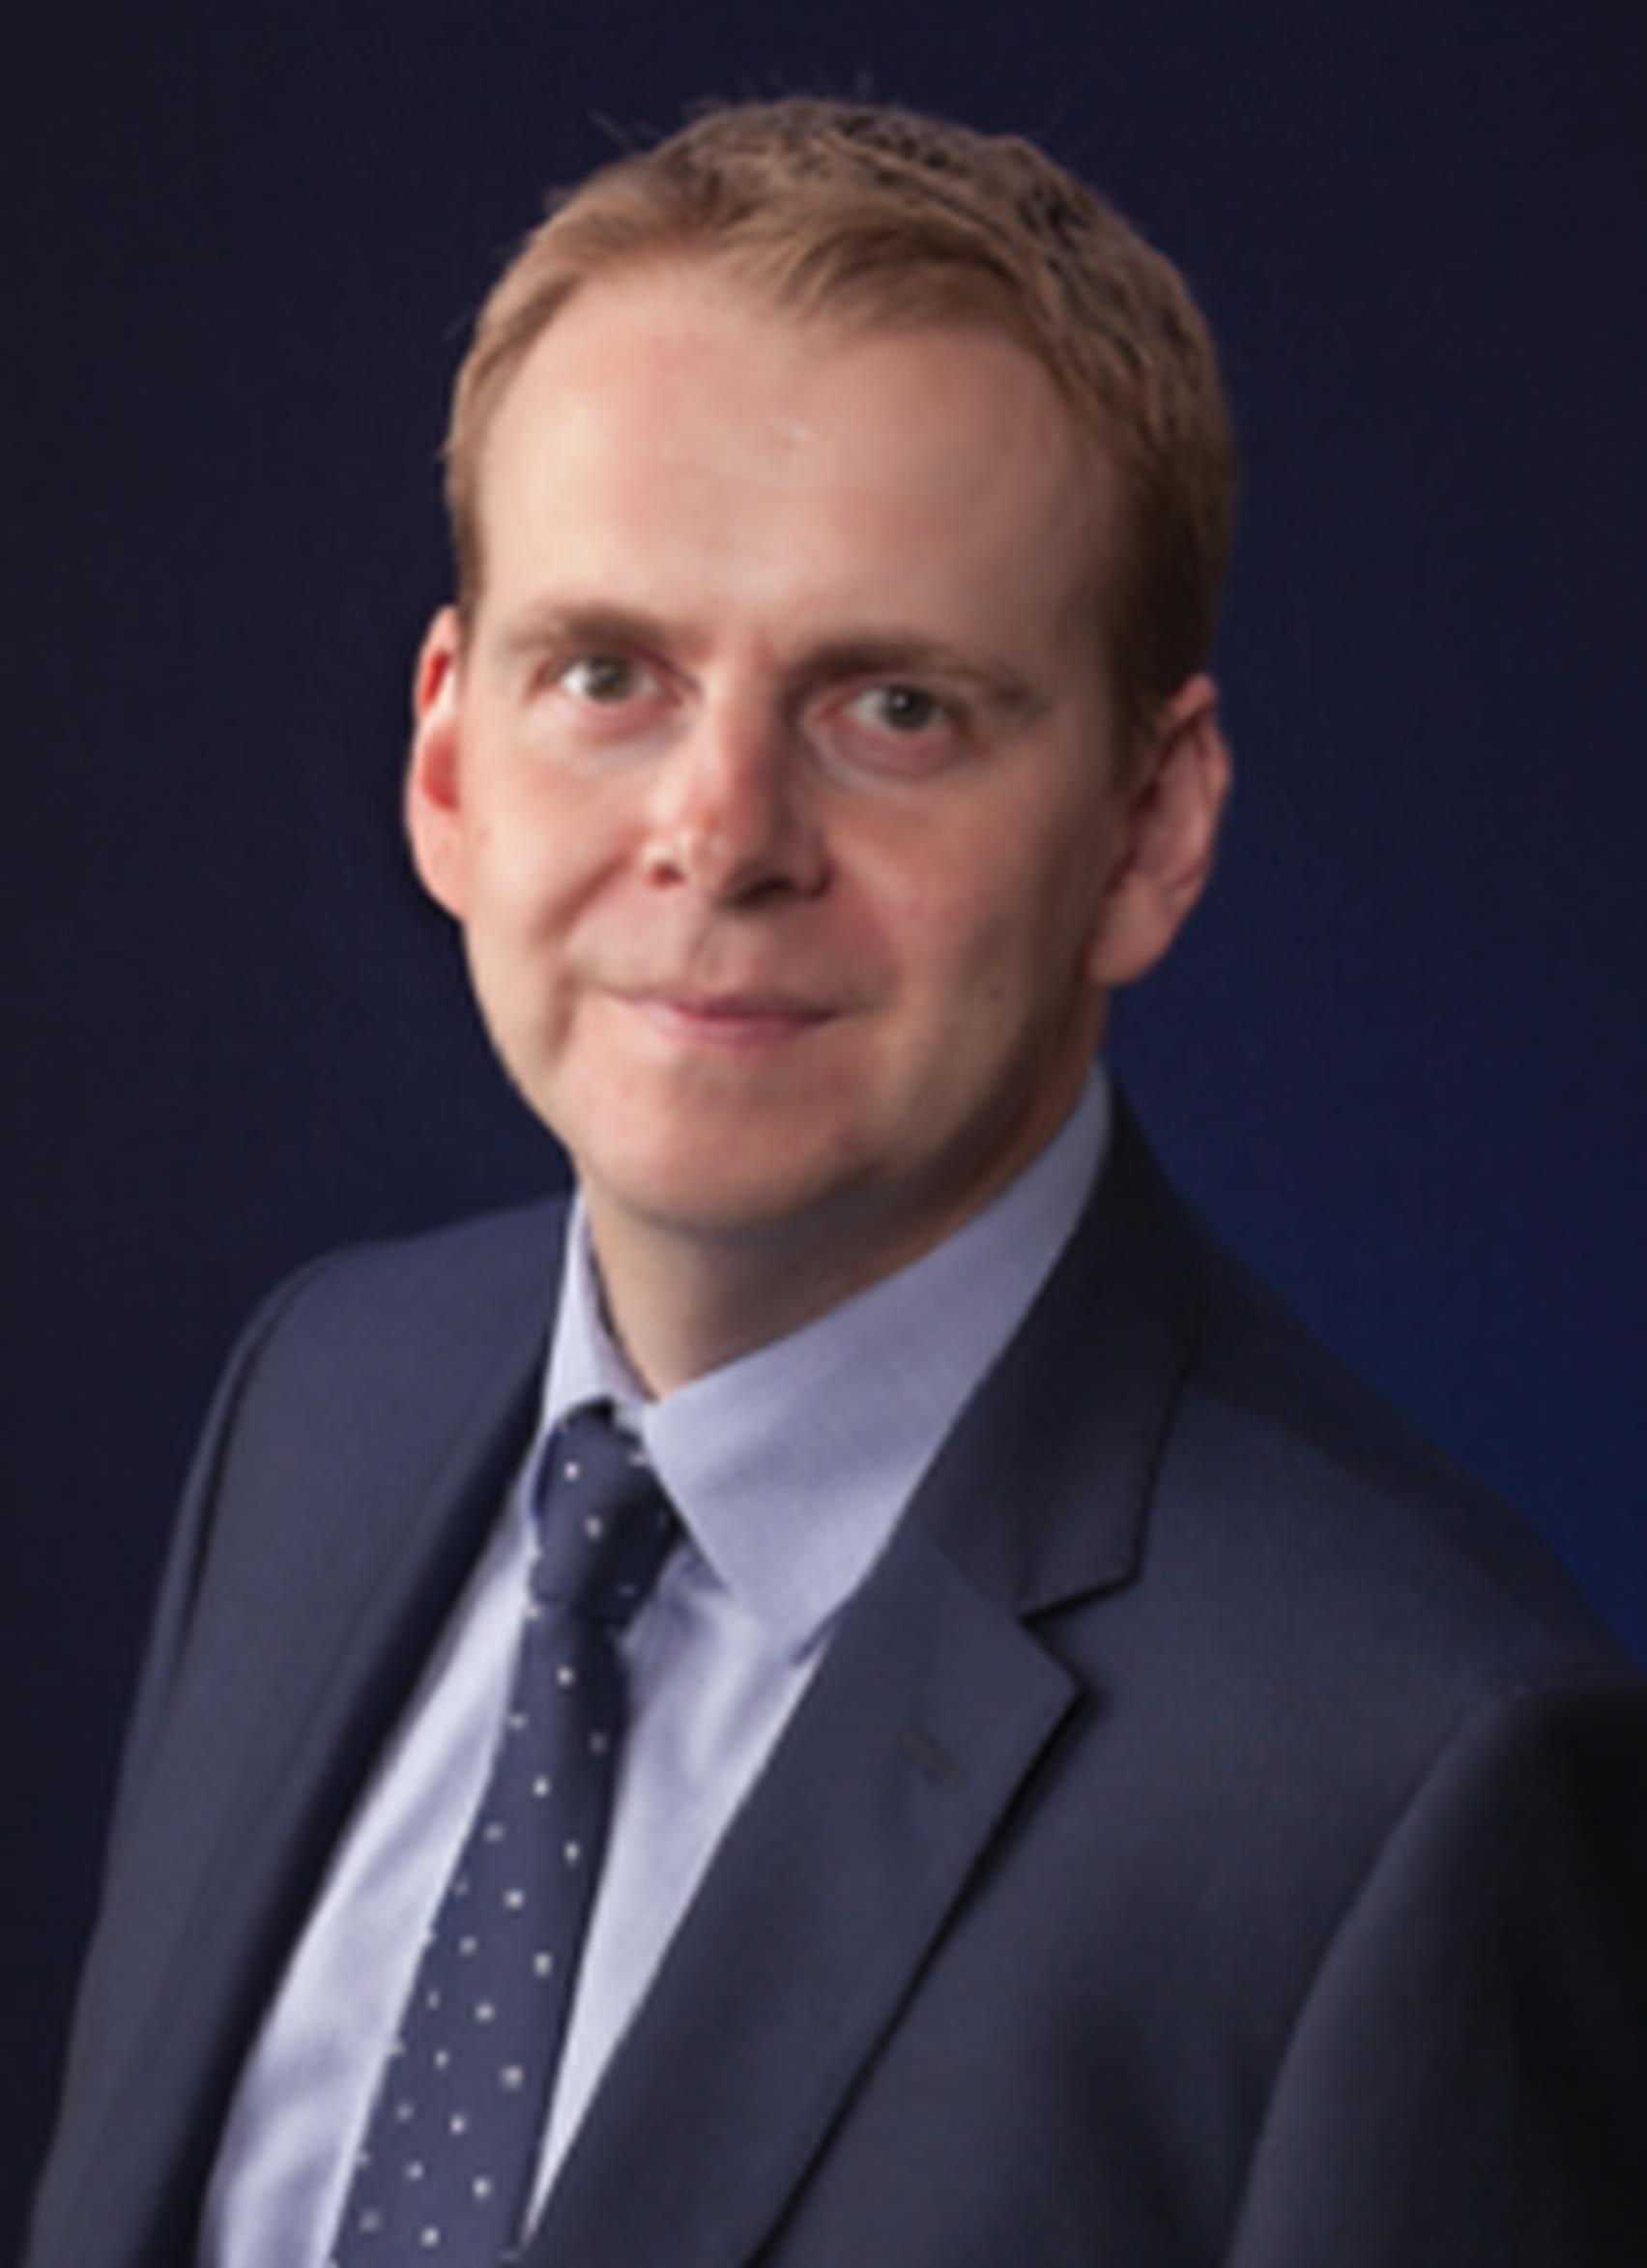 Pester is BPA's new chief executive